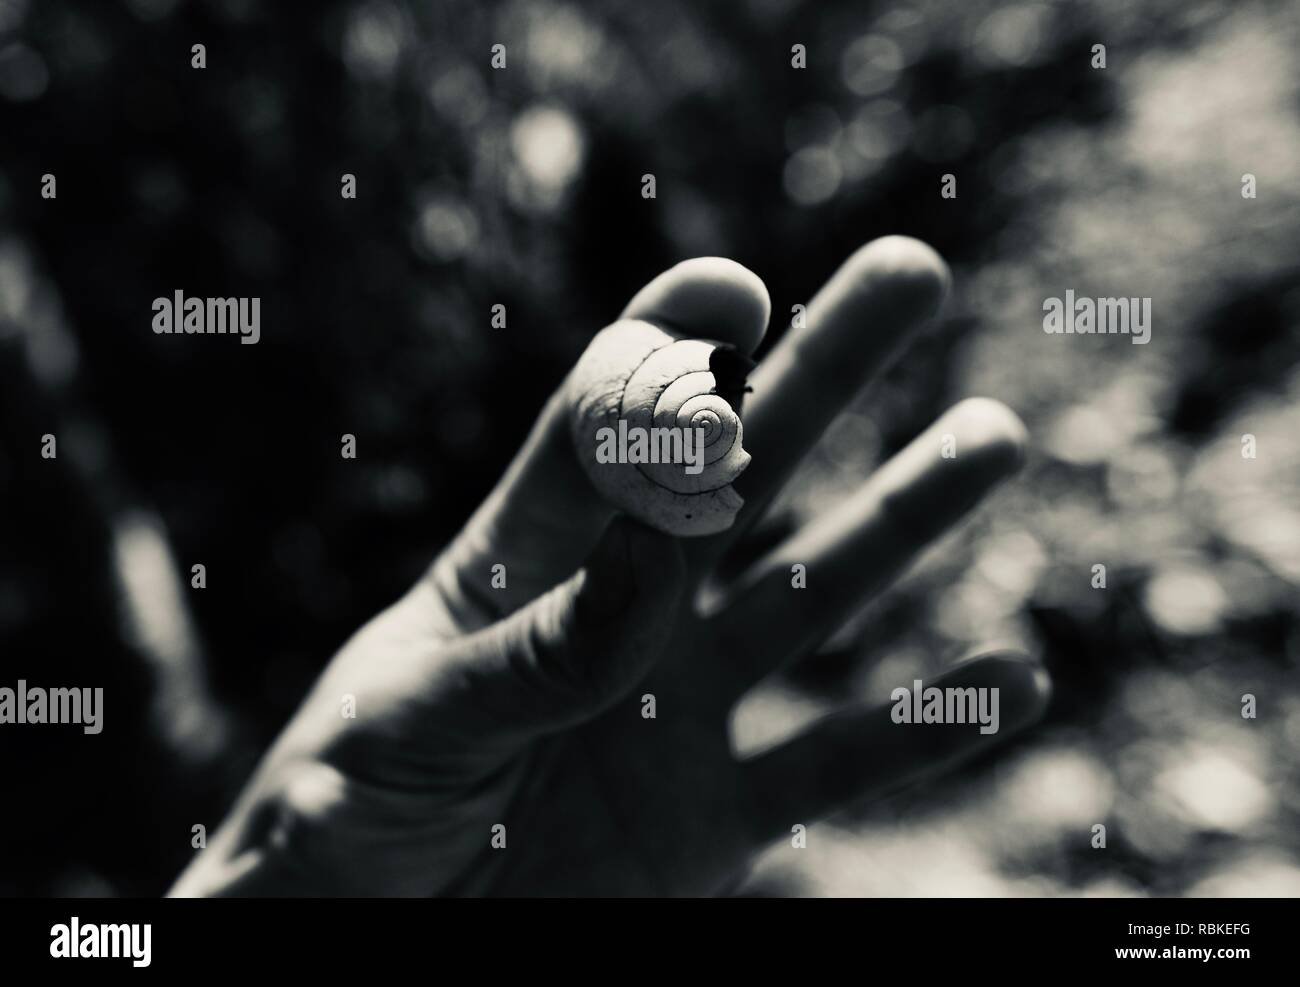 A hand holding a native snail shell in black and white, Hiking through Cape Hillsborough National Park, Queensland, Australia - Stock Image